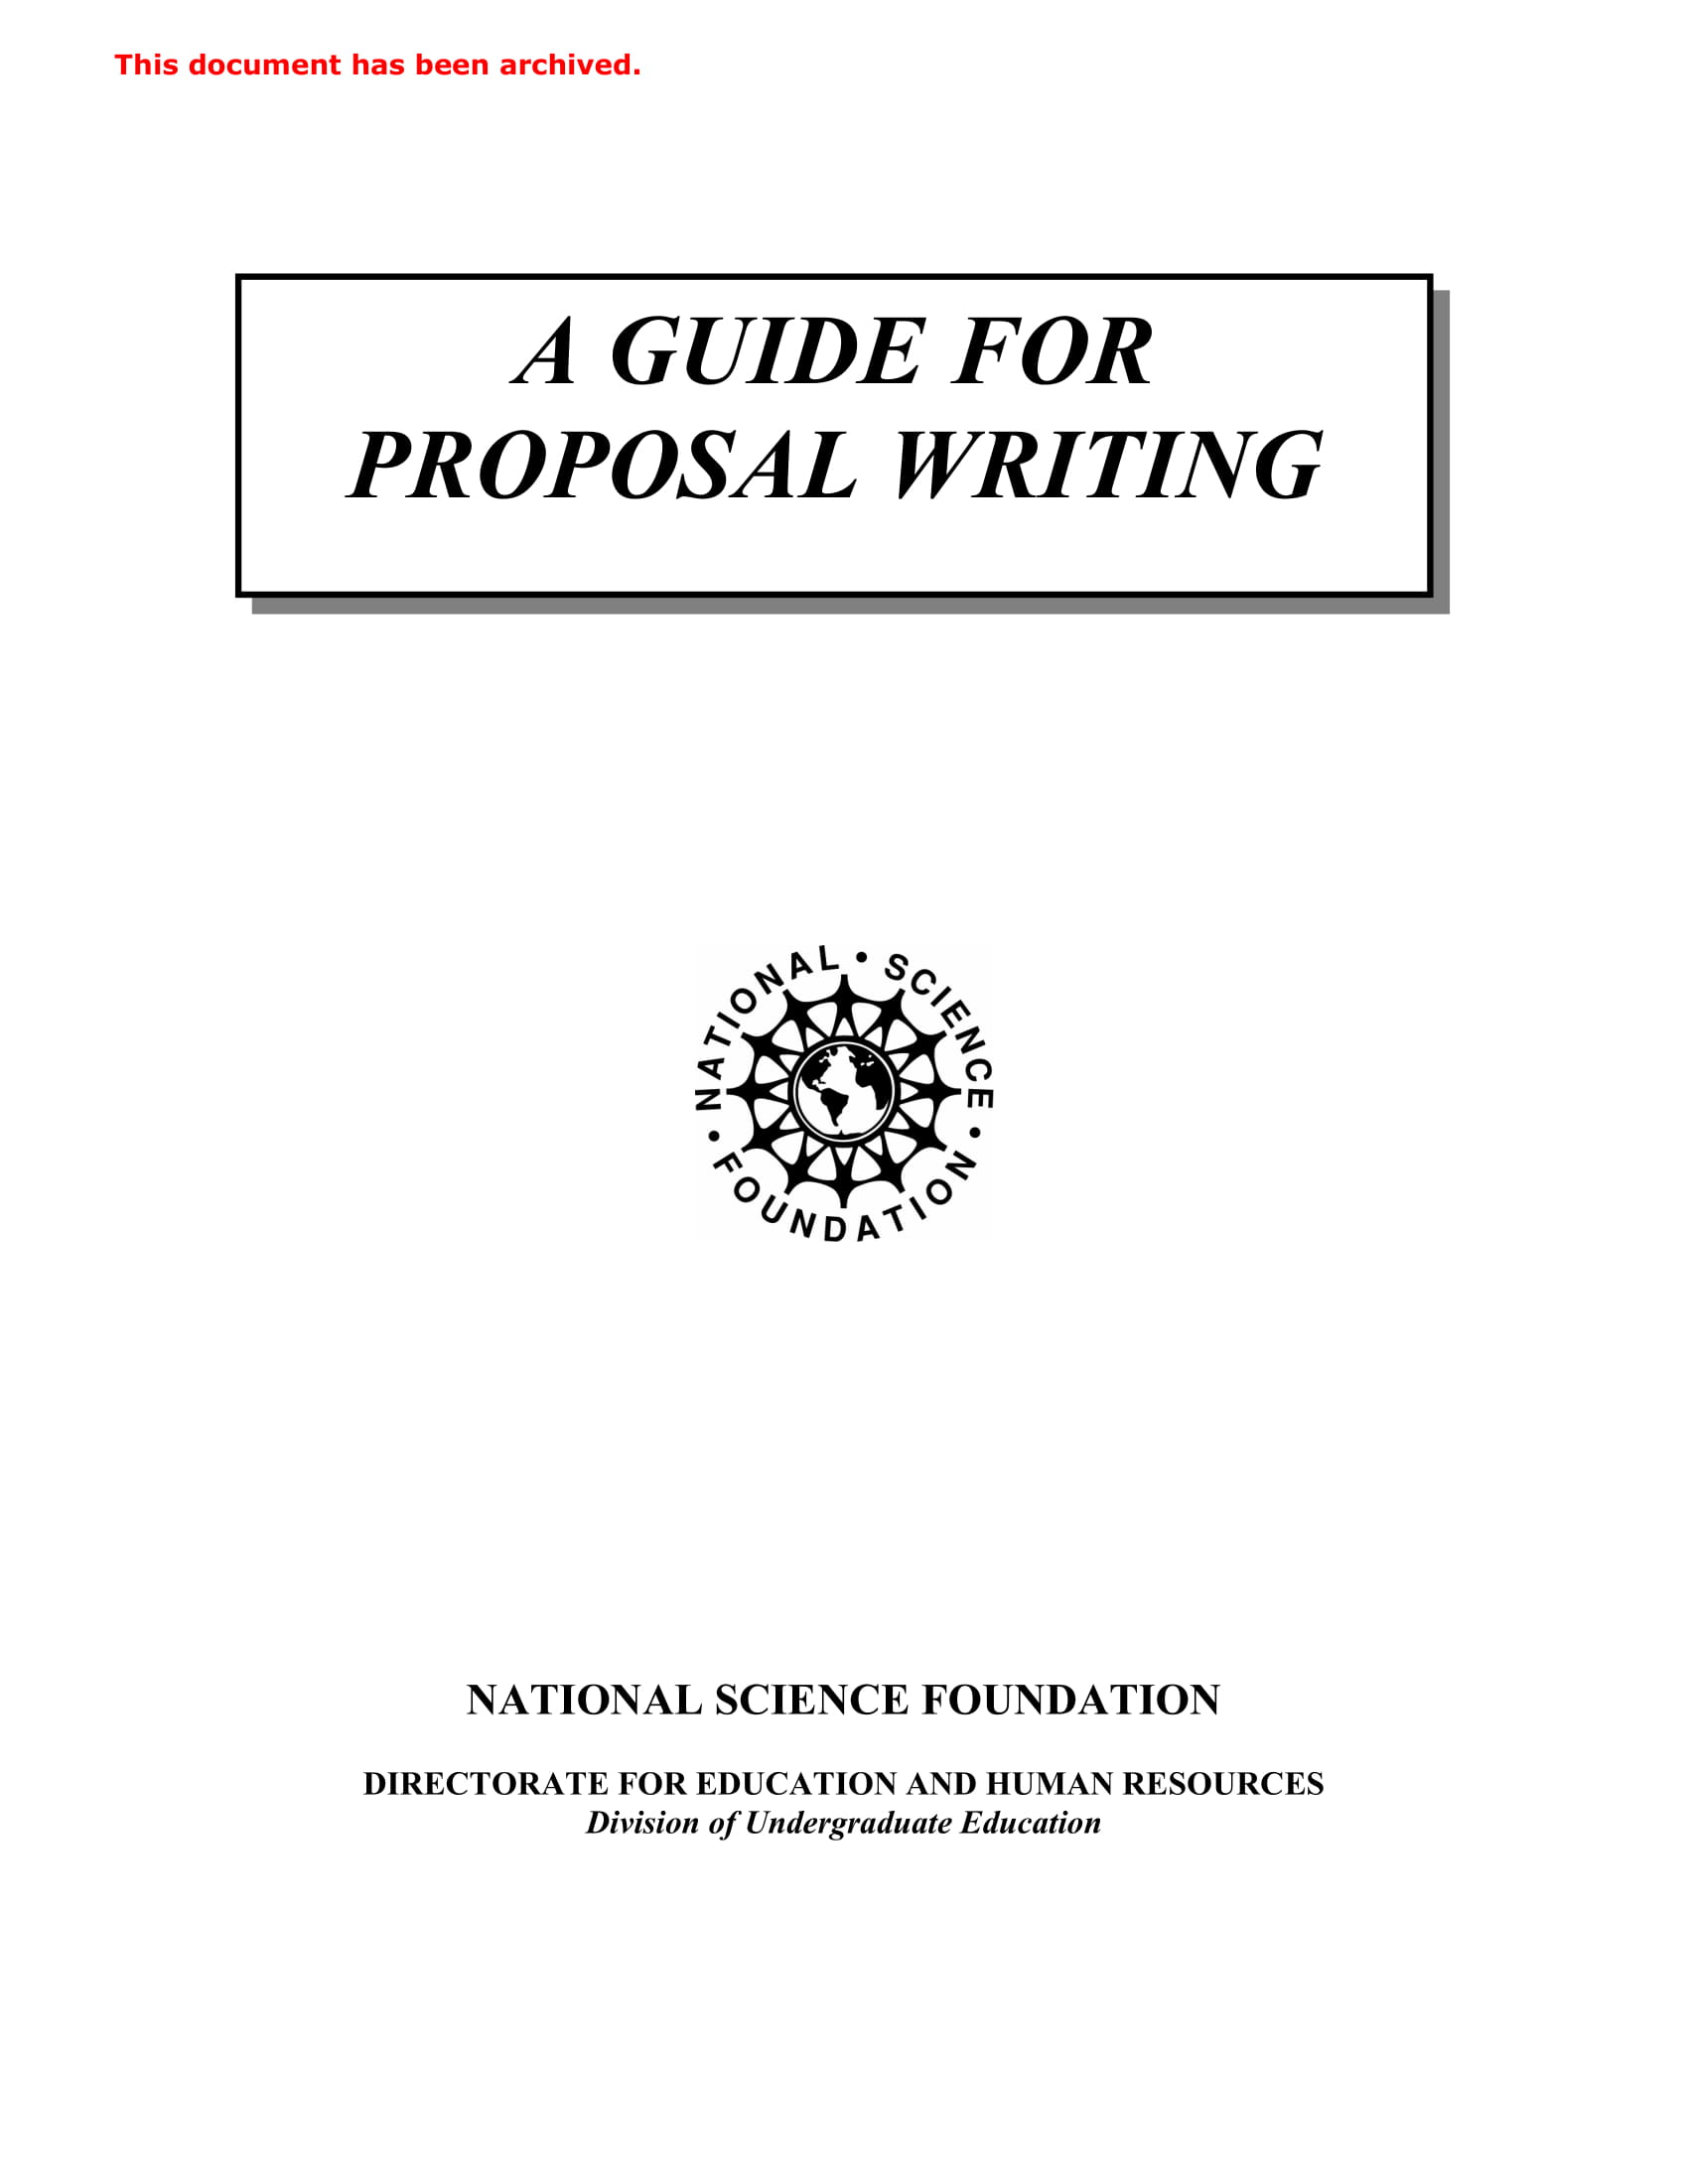 guide for proposal writing example 01